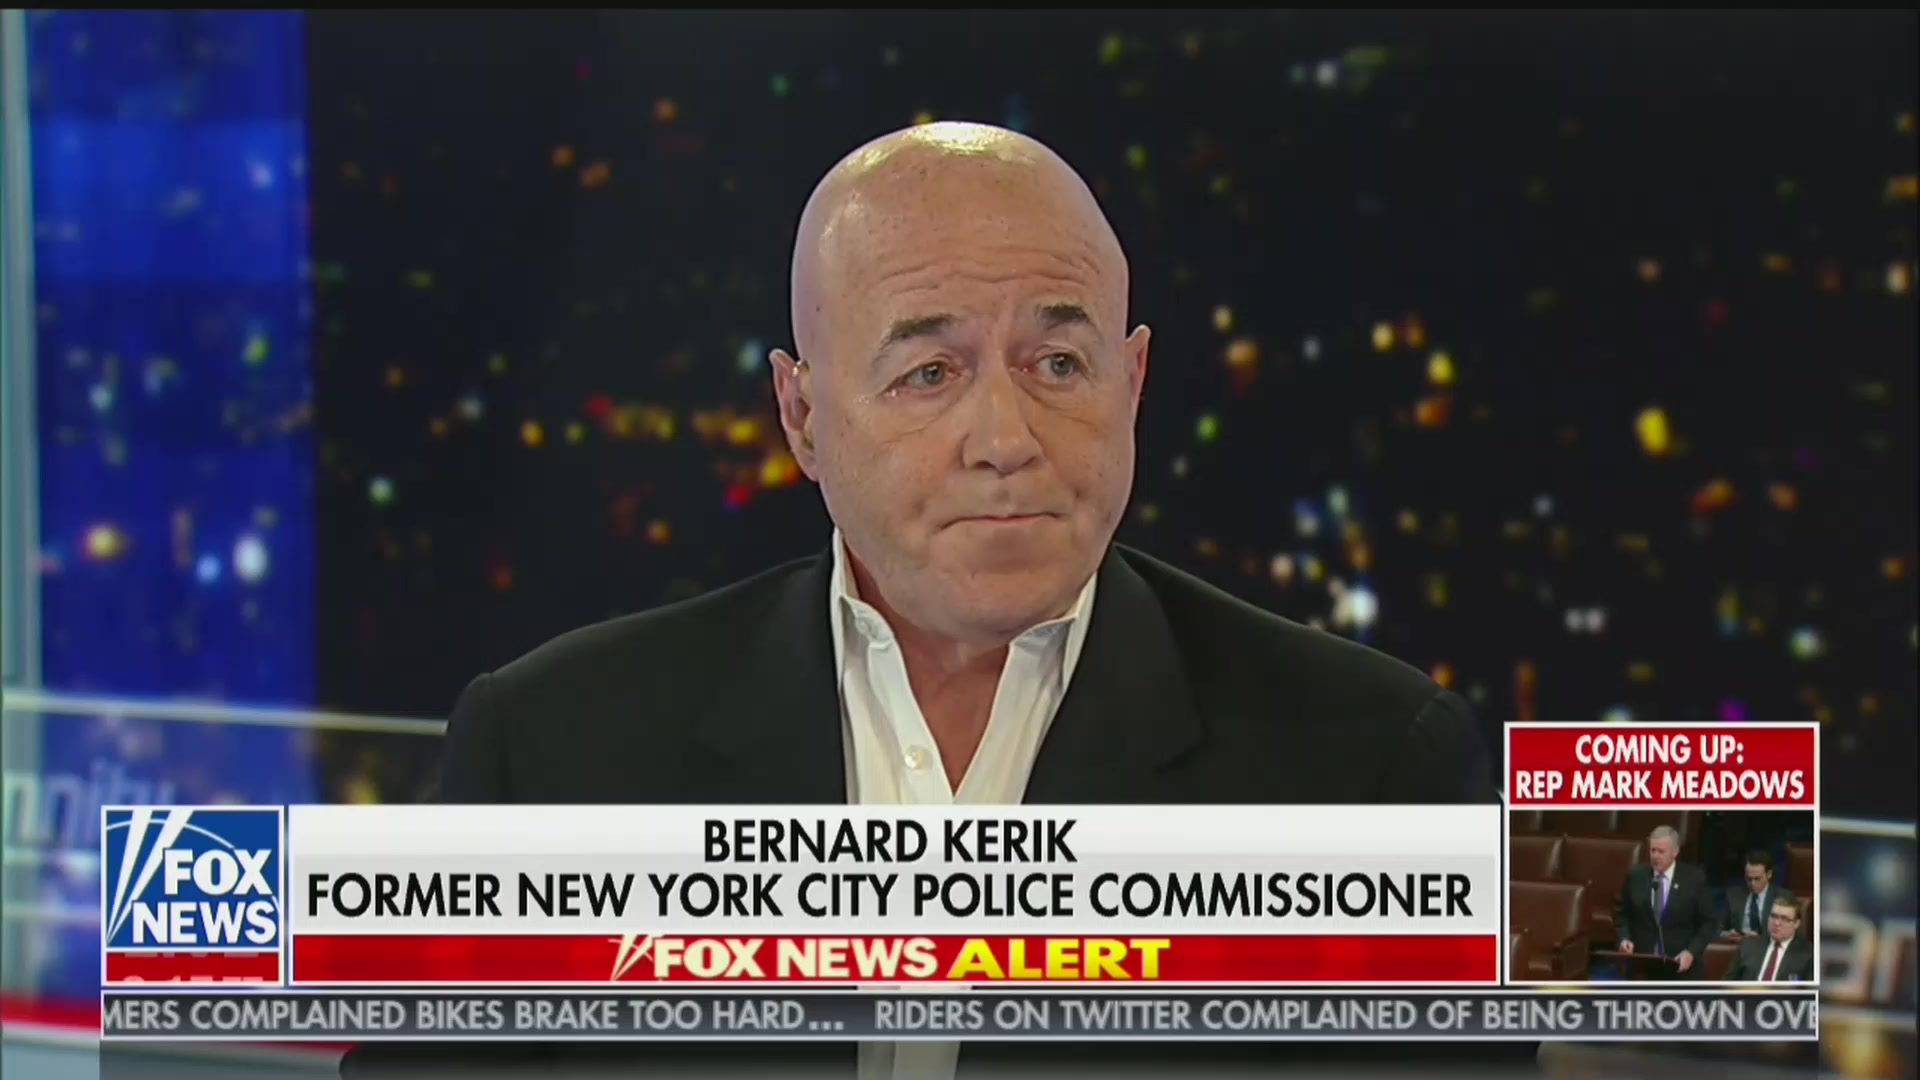 Hannity Turns to Felon Who Used 9/11 Apartment for Extramarital Affair to Fearmonger on Omar